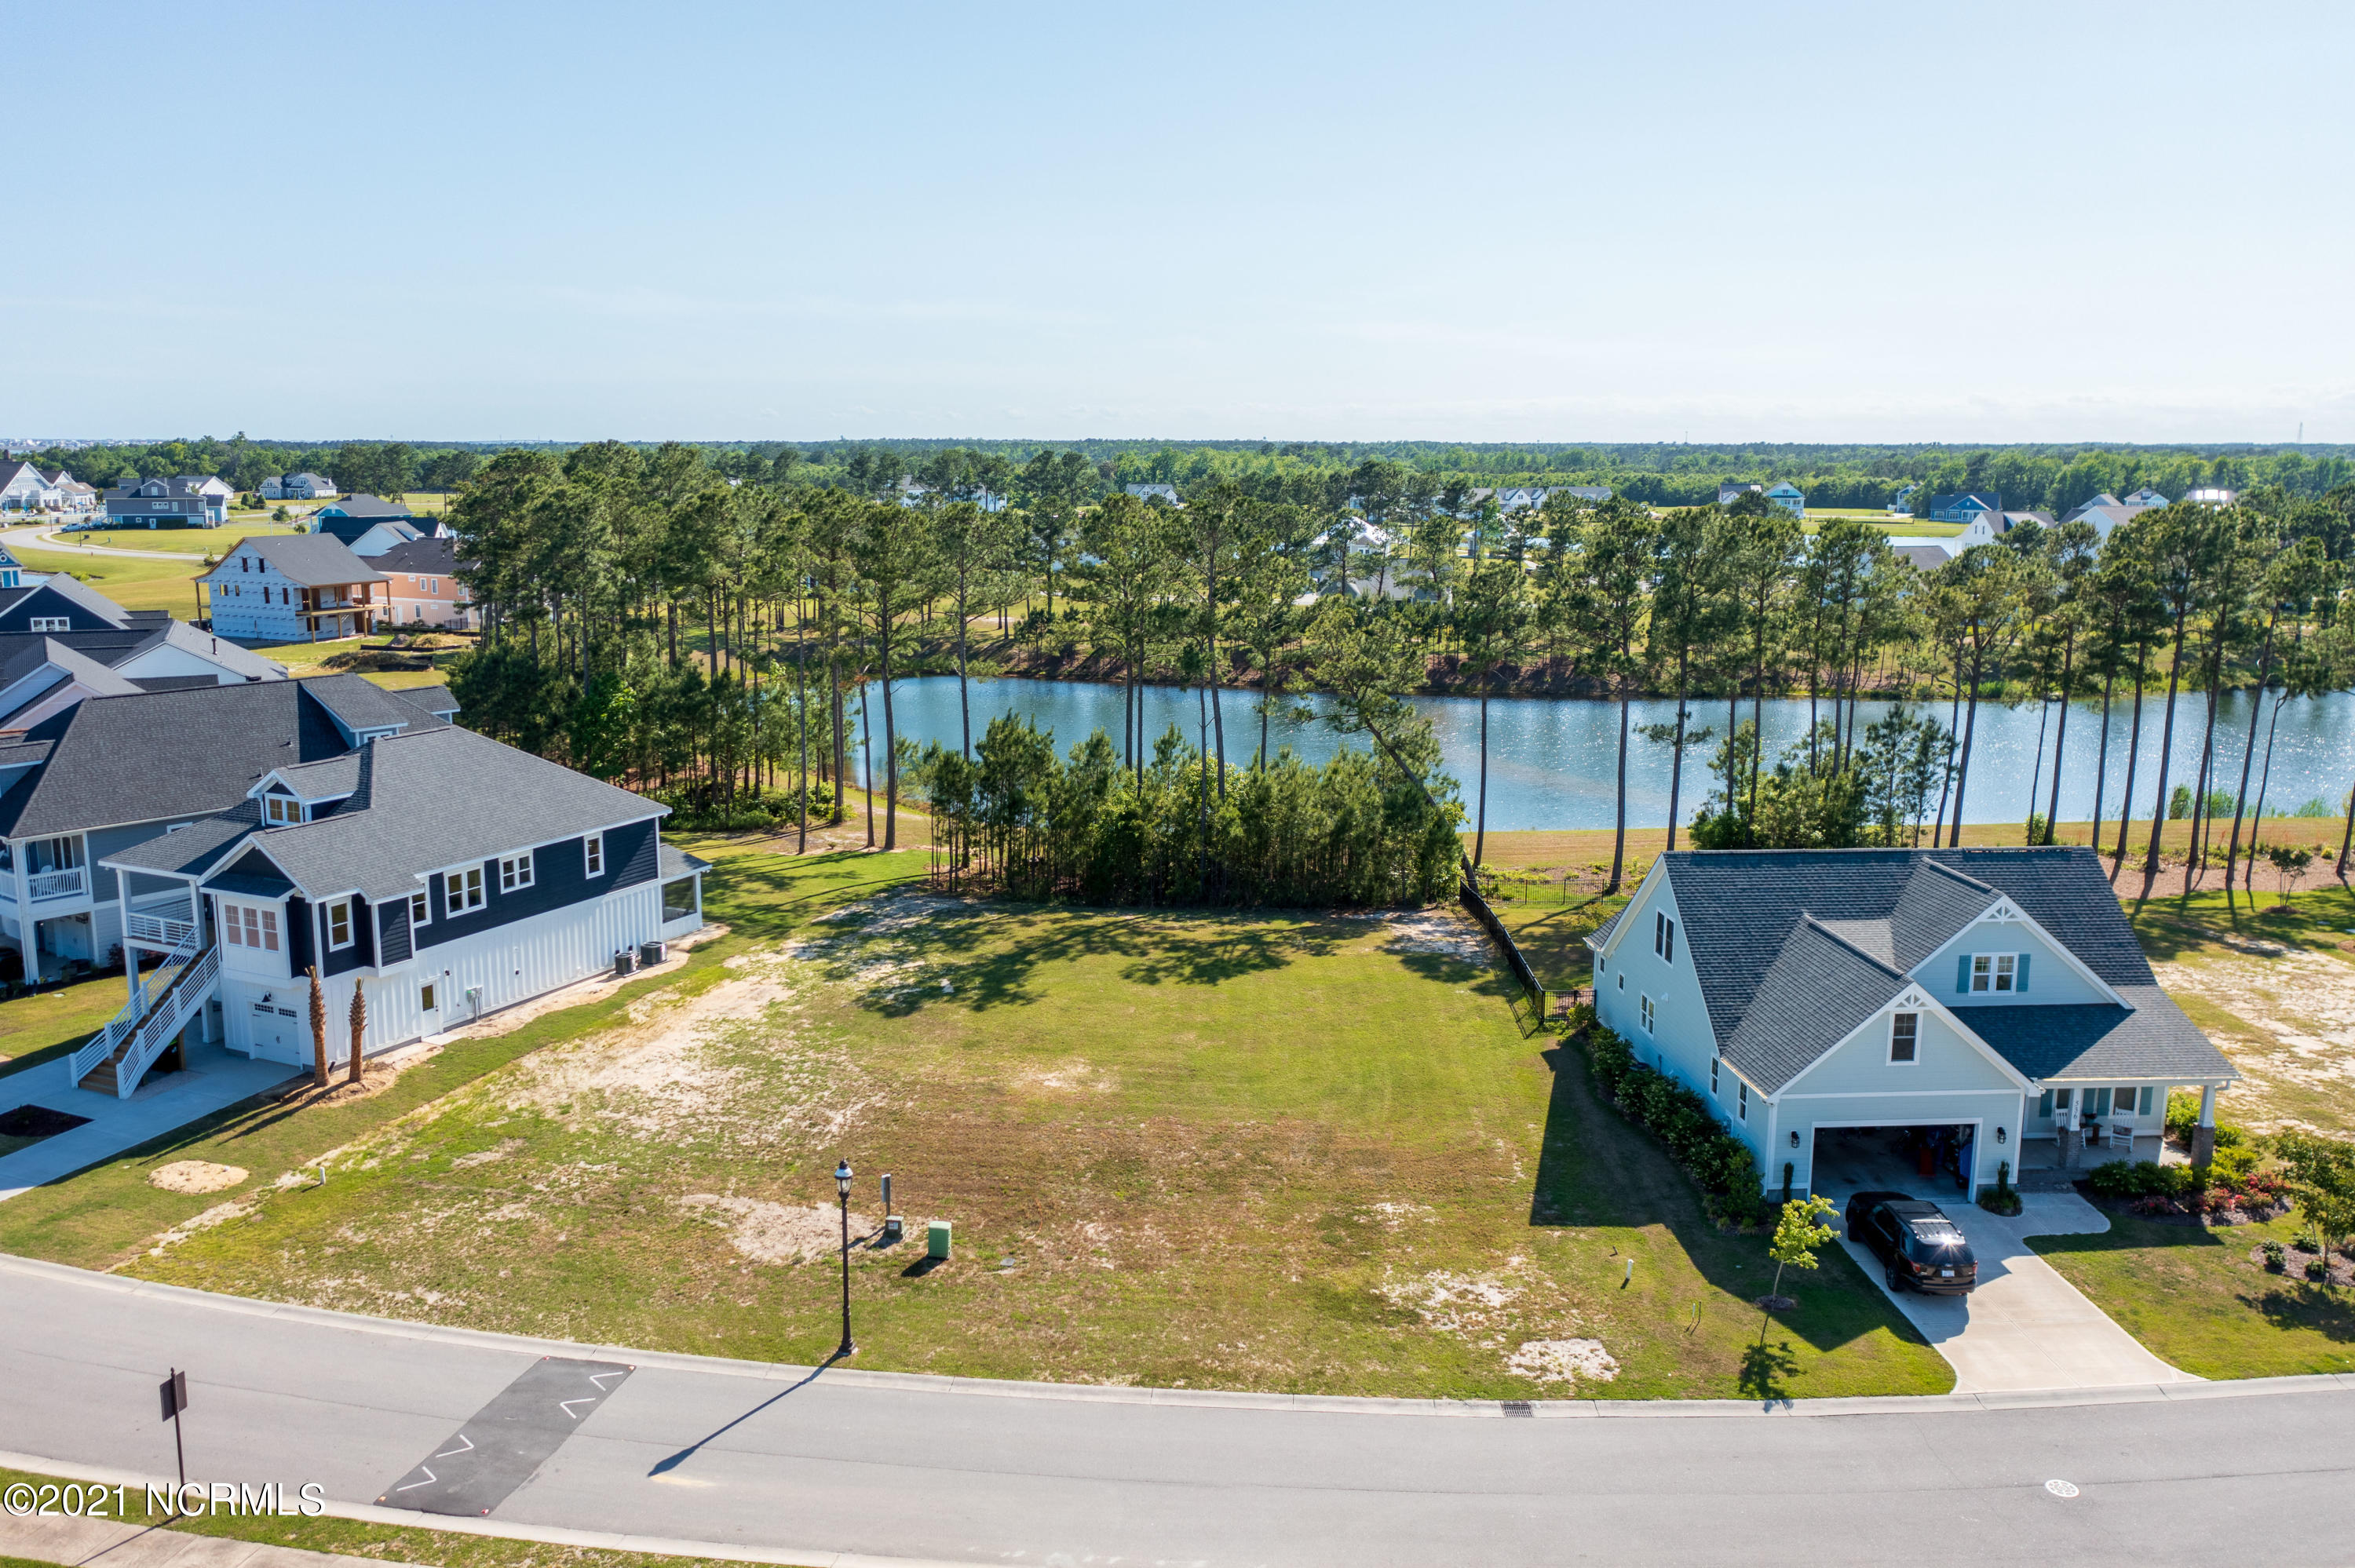 Don't miss this lake front lot in the gated waterfront community of Summerhouse on Everett Bay.  Build your dream home in this coastal community minutes from Topsail Island.  The Atlantic Ocean and the ICW offer many boating opportunities from the ramp and day dock which are part of the many amenities at Summerhouse.  Summerhouse on Everett Bay also offers a large clubhouse with an amazing swimming pool, tennis, workout facility, trails for walking or biking plus a day dock.  This lot overlooks one of the many lakes on the grounds.  Come check it out!